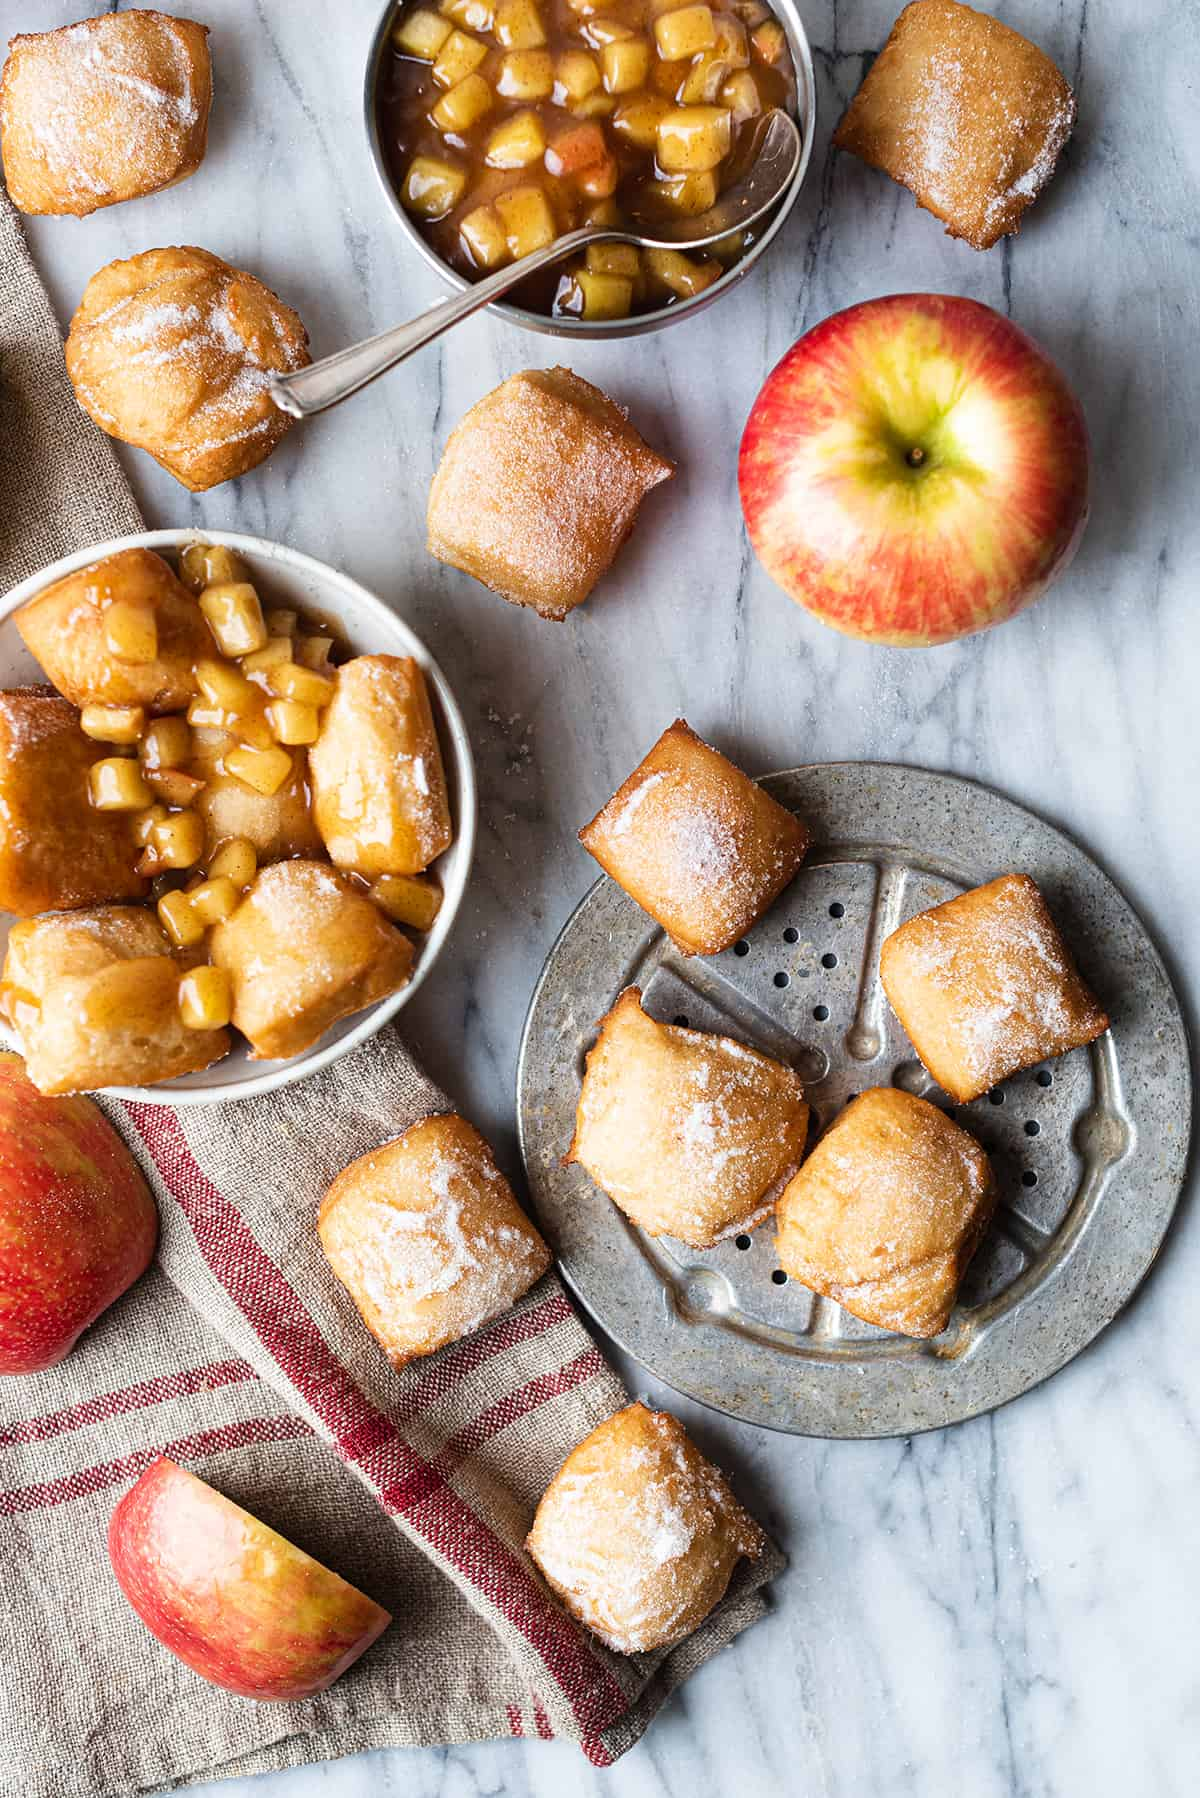 apple beignet bites on silver platter with bowl of apple compote + linen napkin, apples